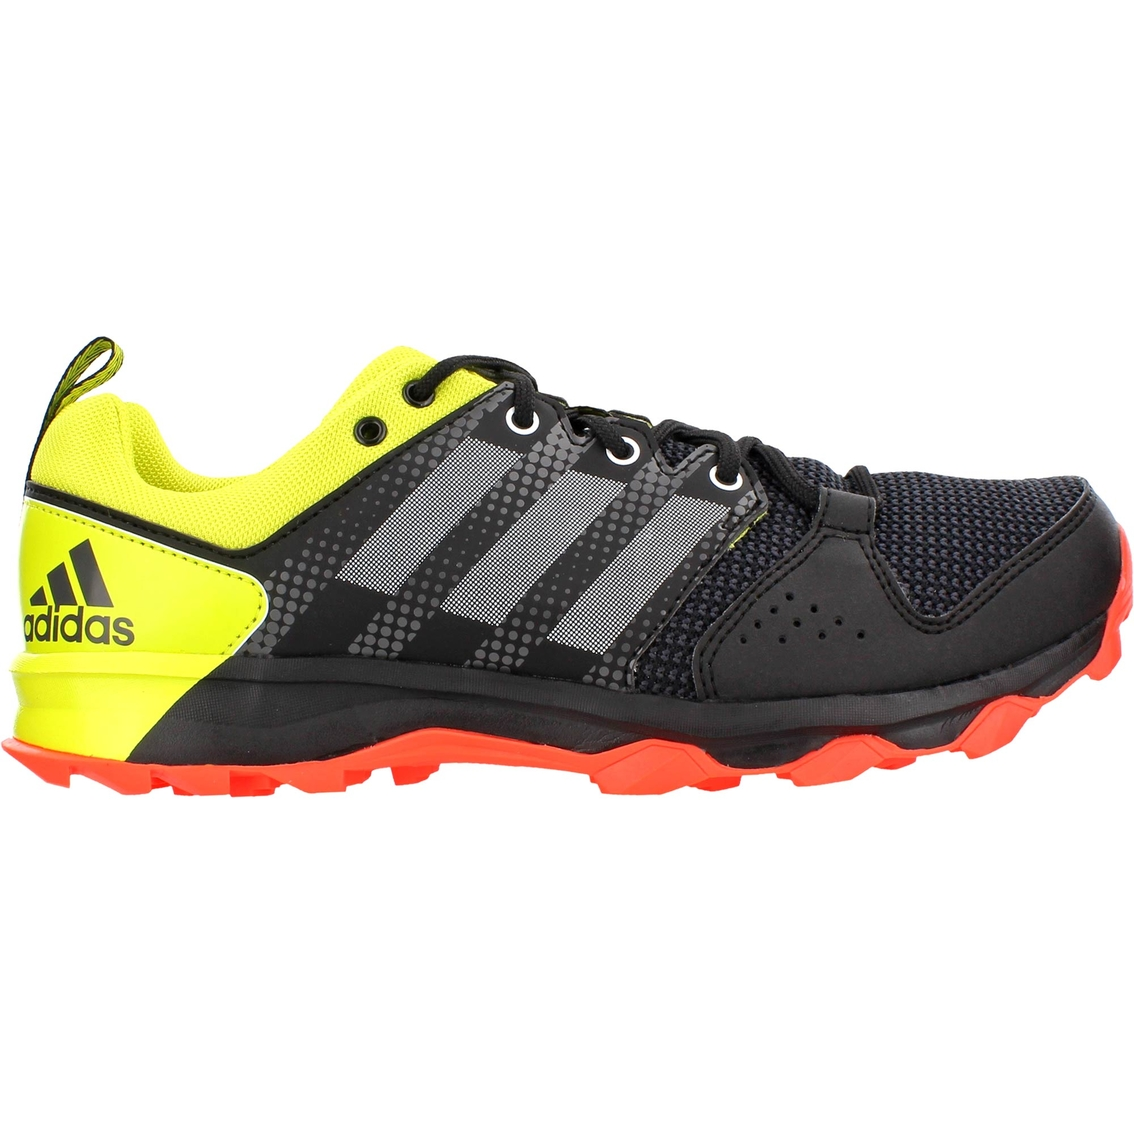 Nord Trail Shoes Reviews